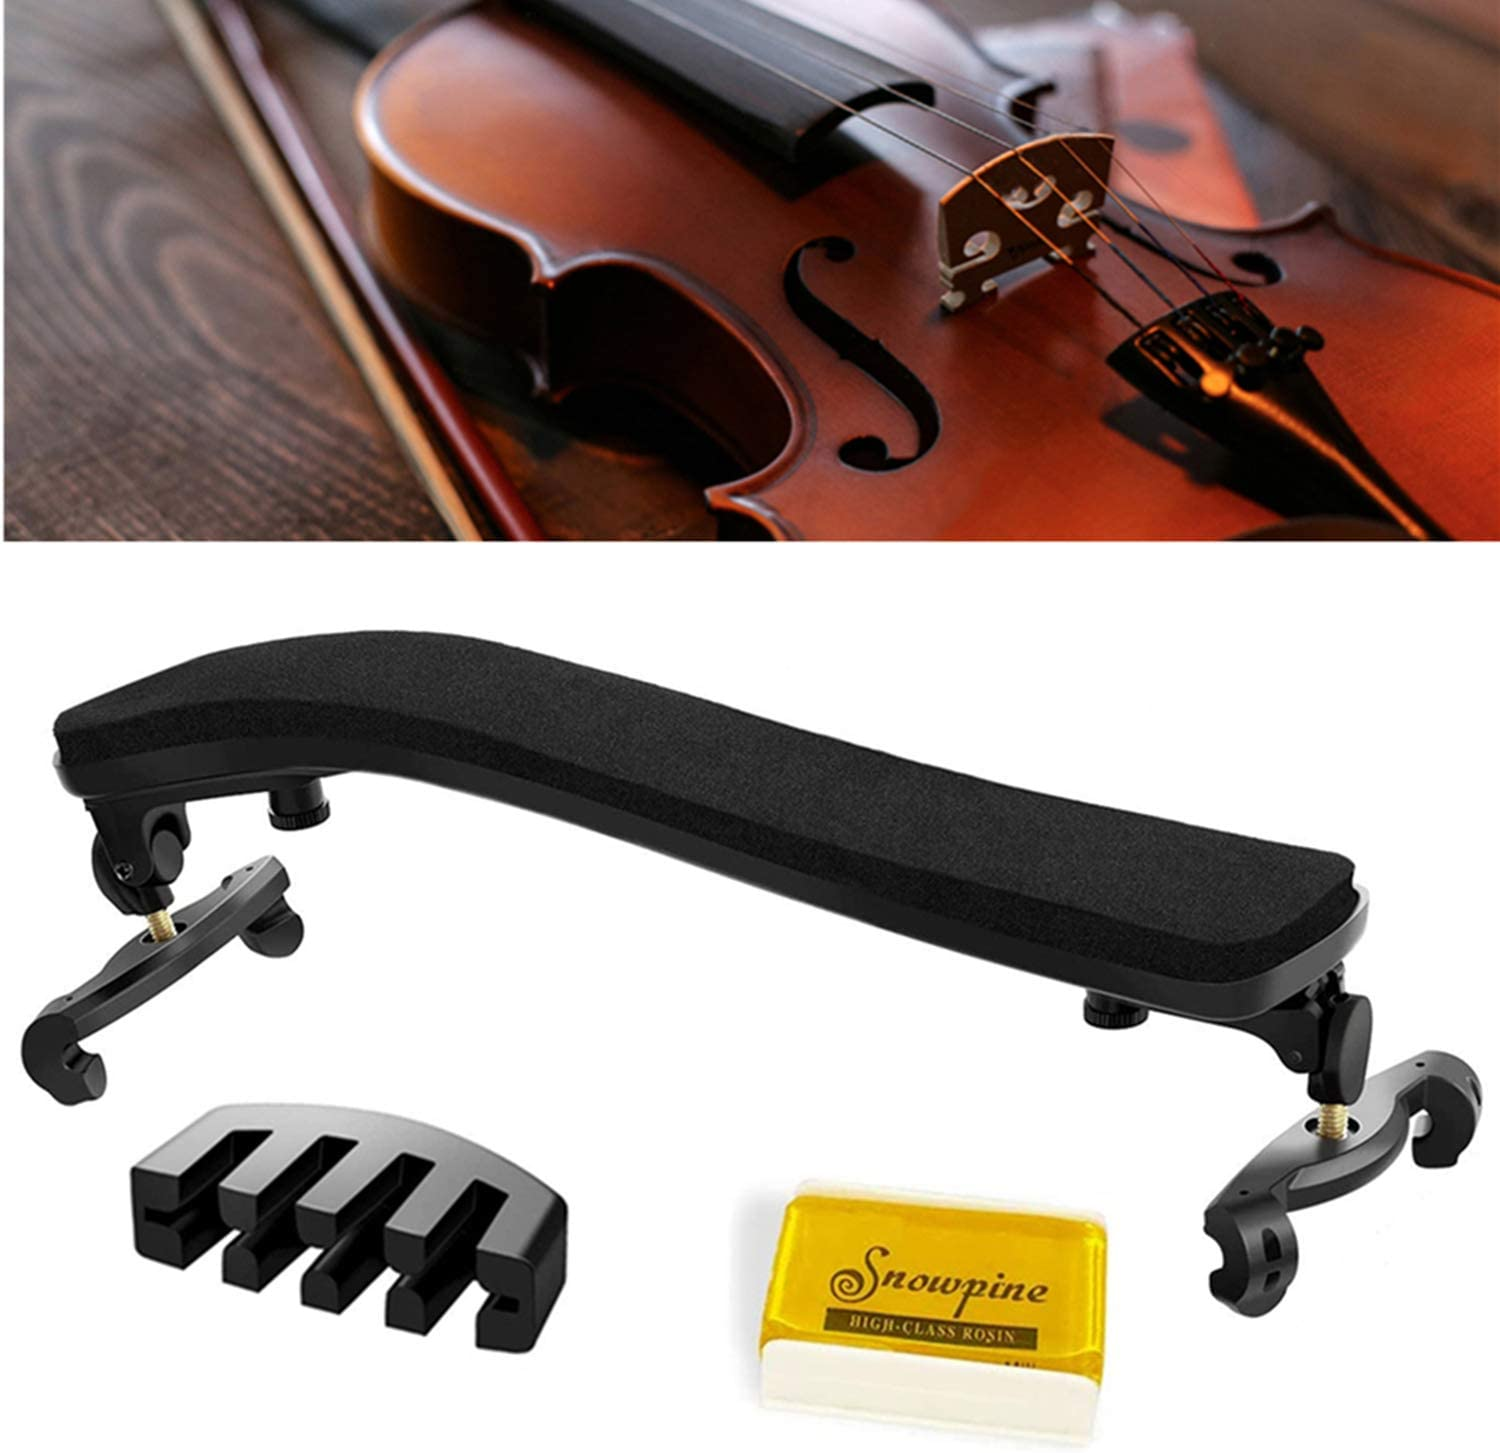 Suewio Violin Shoulder Rest for Genuine 4 a Collapsible with 4-3 OFFer Size